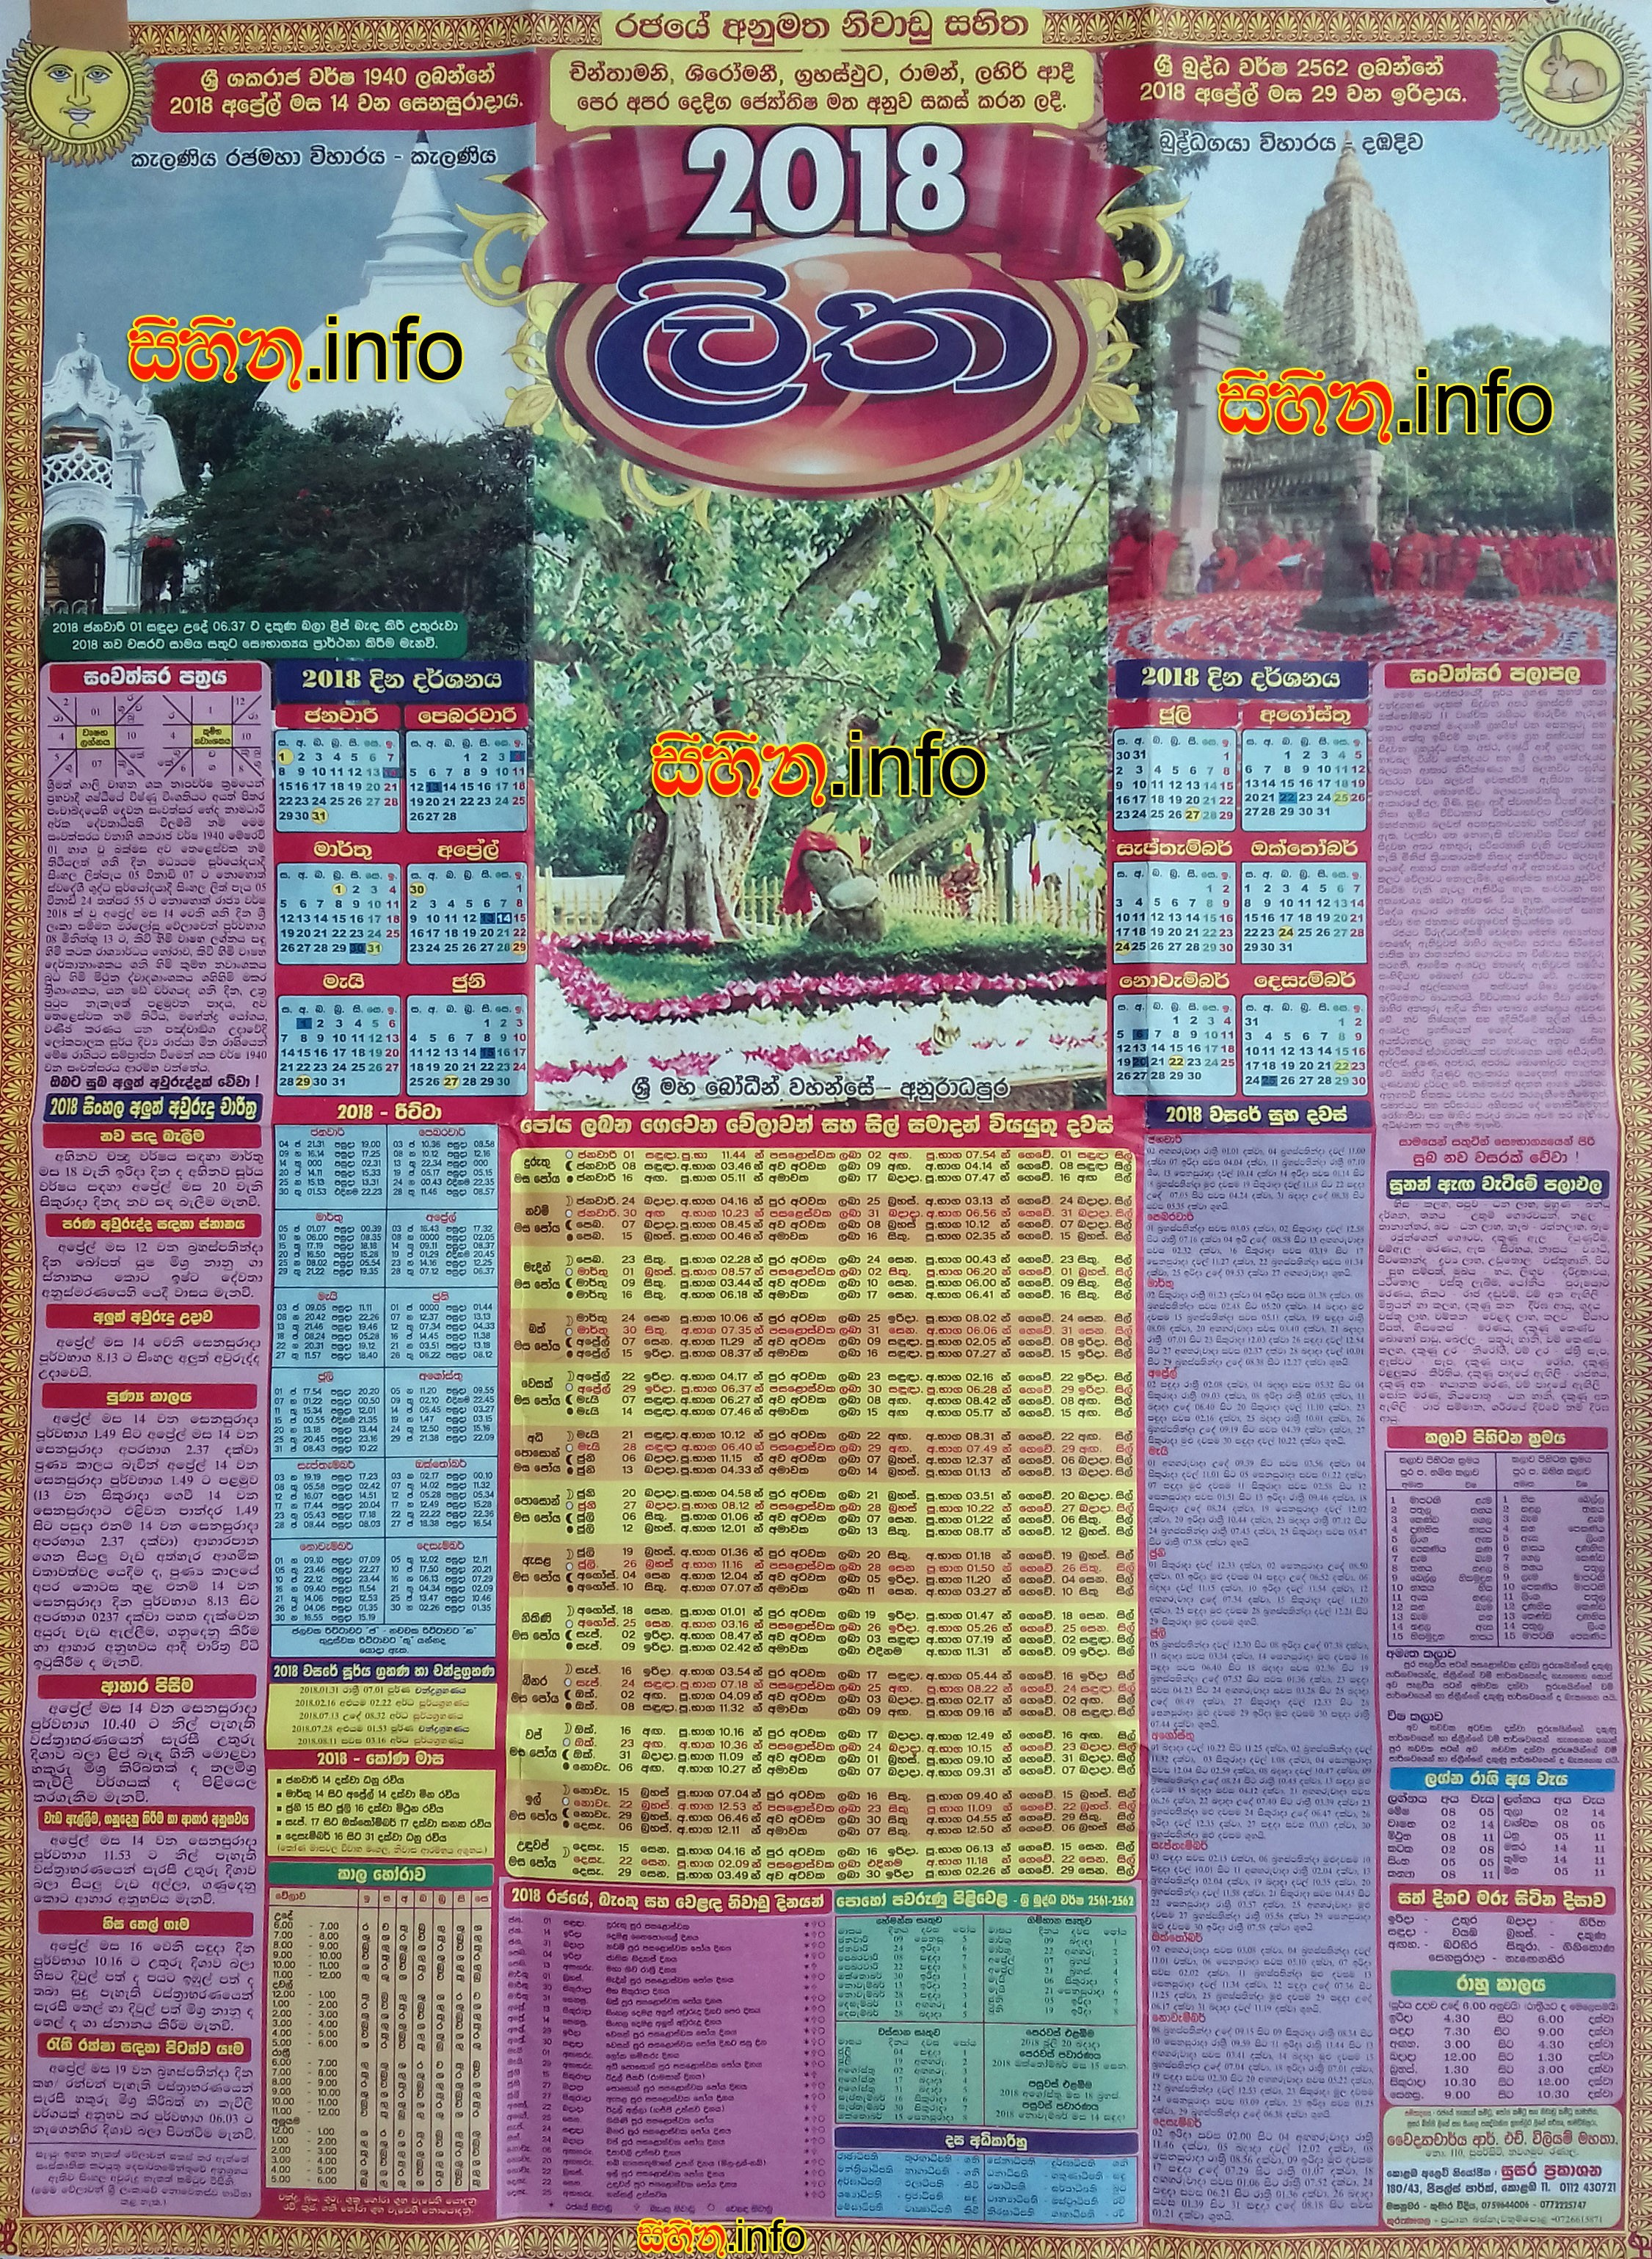 2019 March Calendar Sri Lanka Más Reciente Julian Calendar 2019 Quadax July 2018 Calendar Sri Lanka – Calendar Of 2019 March Calendar Sri Lanka Mejores Y Más Novedosos A Technical Perspective Understanding the Concept Of the Multiple